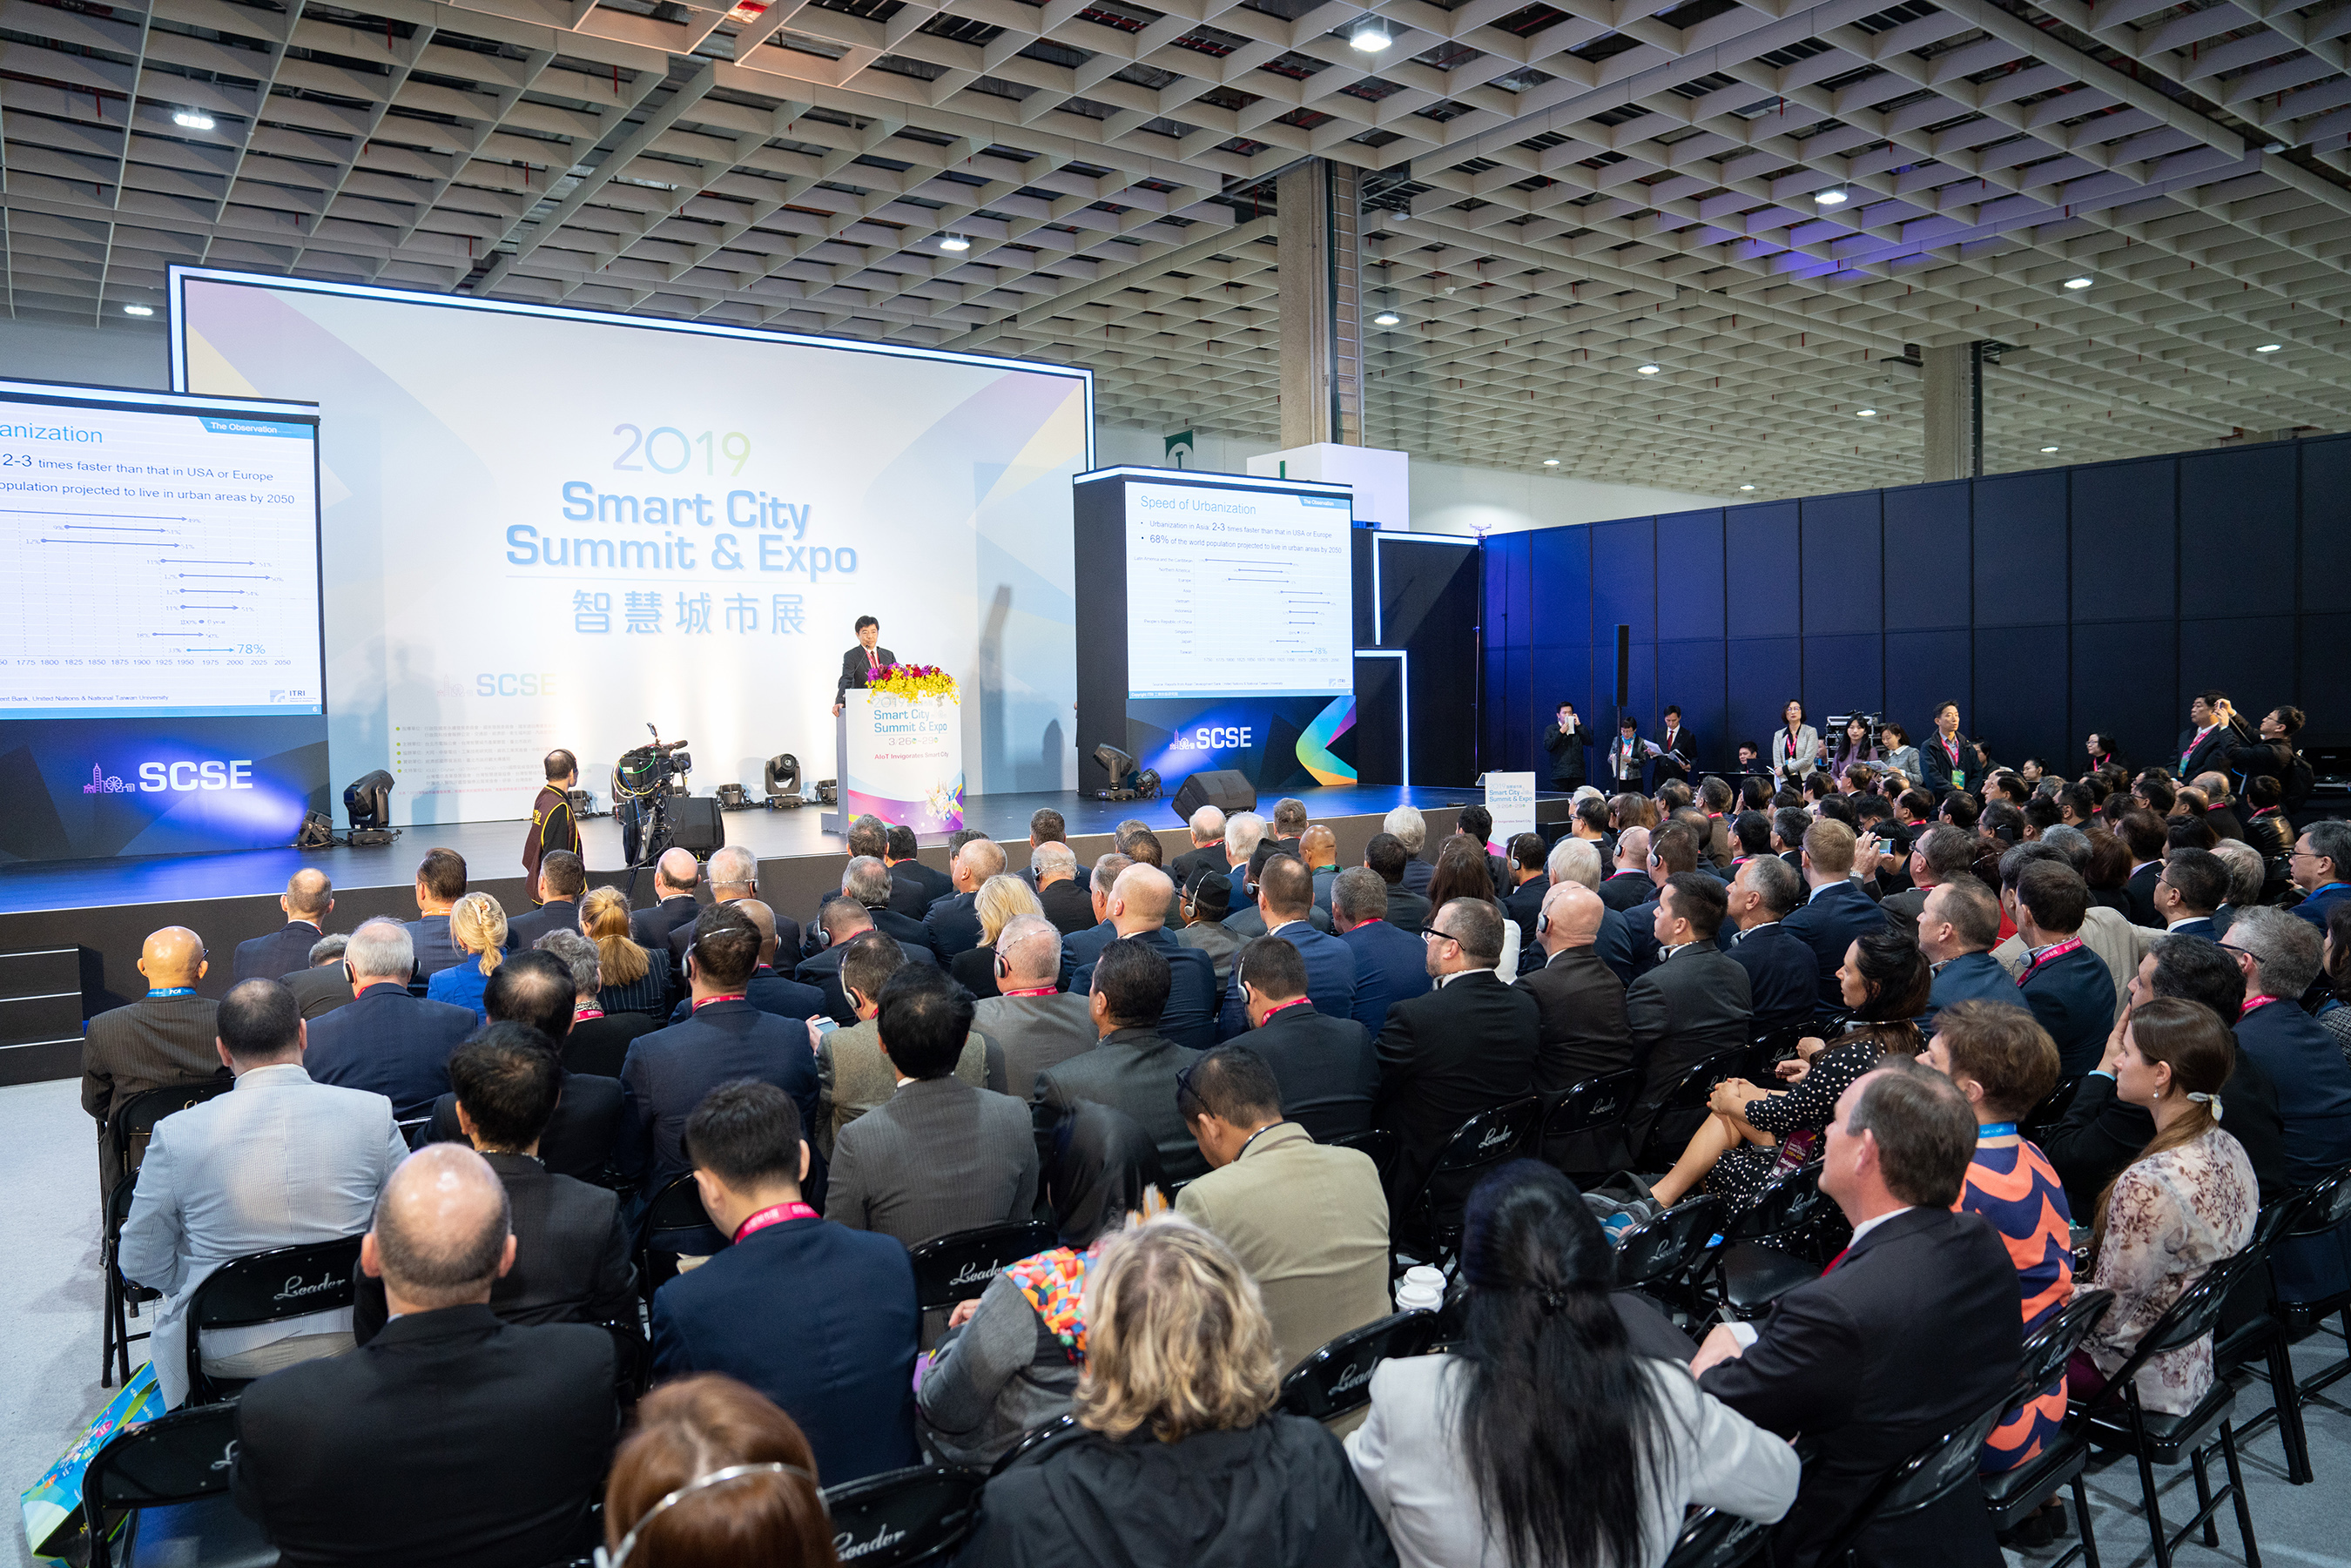 Asia's largest hybrid smart city event, starting from Mar. 23 to 26 in Taipei